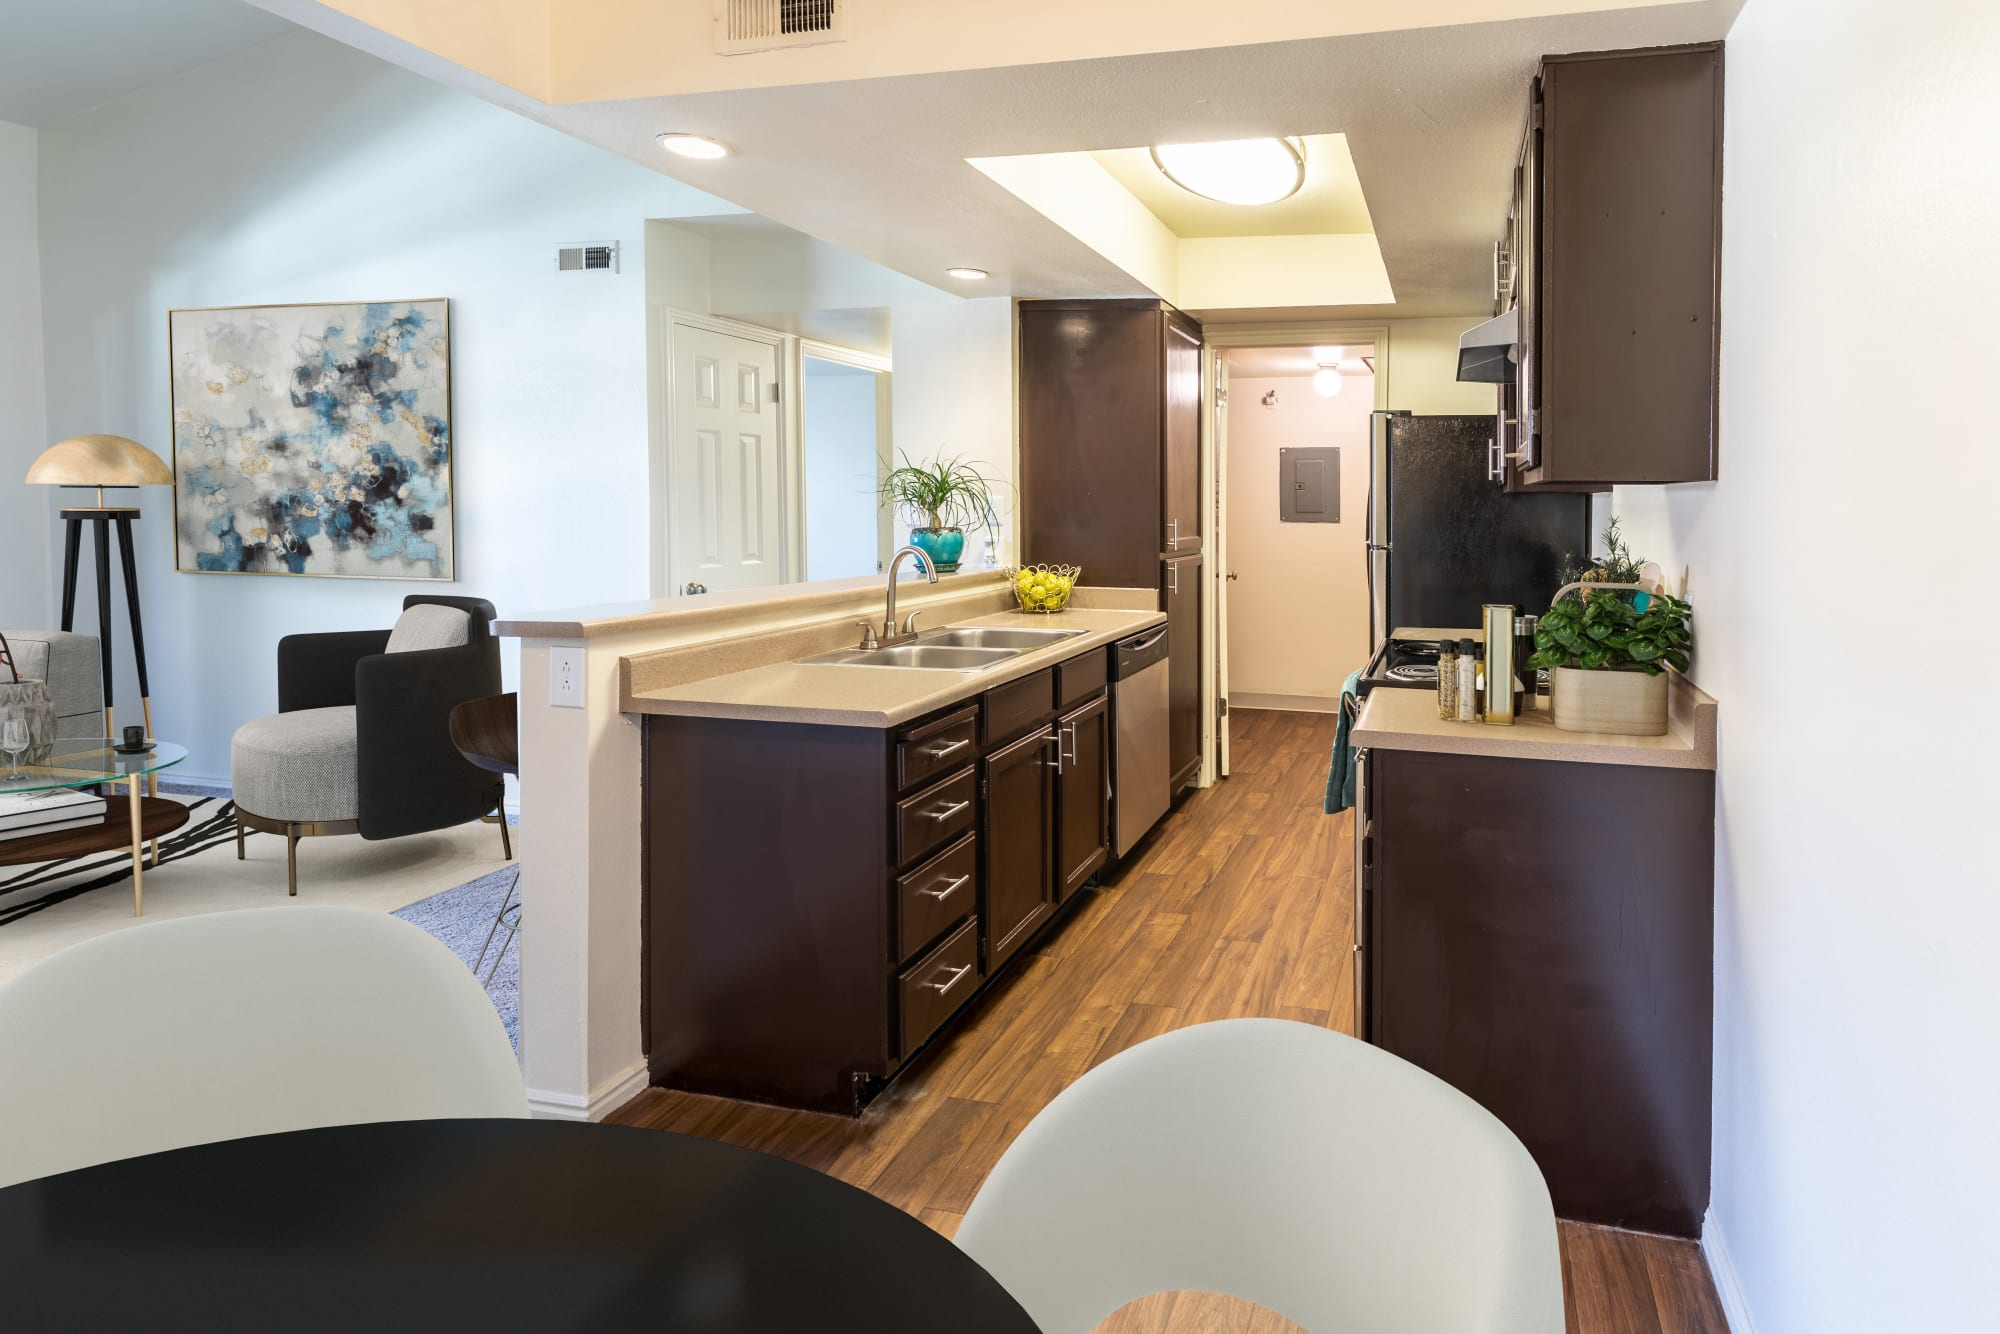 Spacious kitchen with a view into the living room at Shadowbrook Apartments in West Valley City, Utah